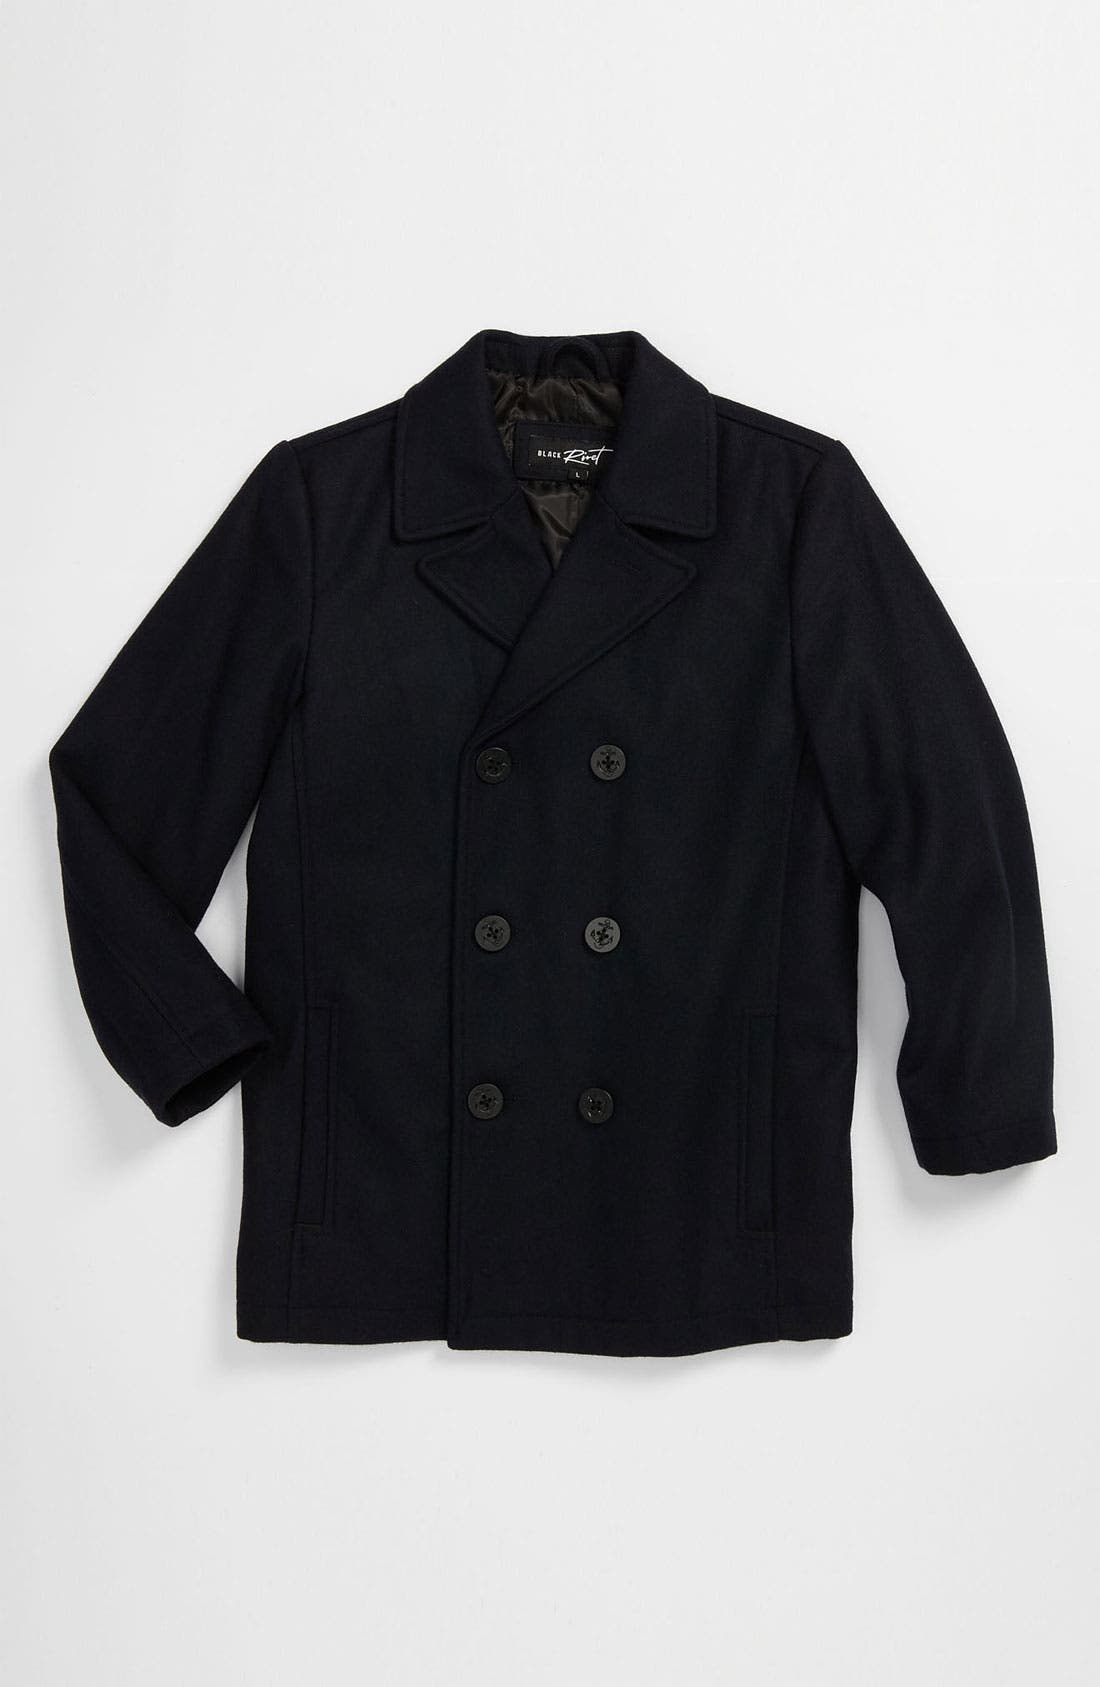 Alternate Image 1 Selected - Black Rivet Wool Blend Peacoat (Big Boys)